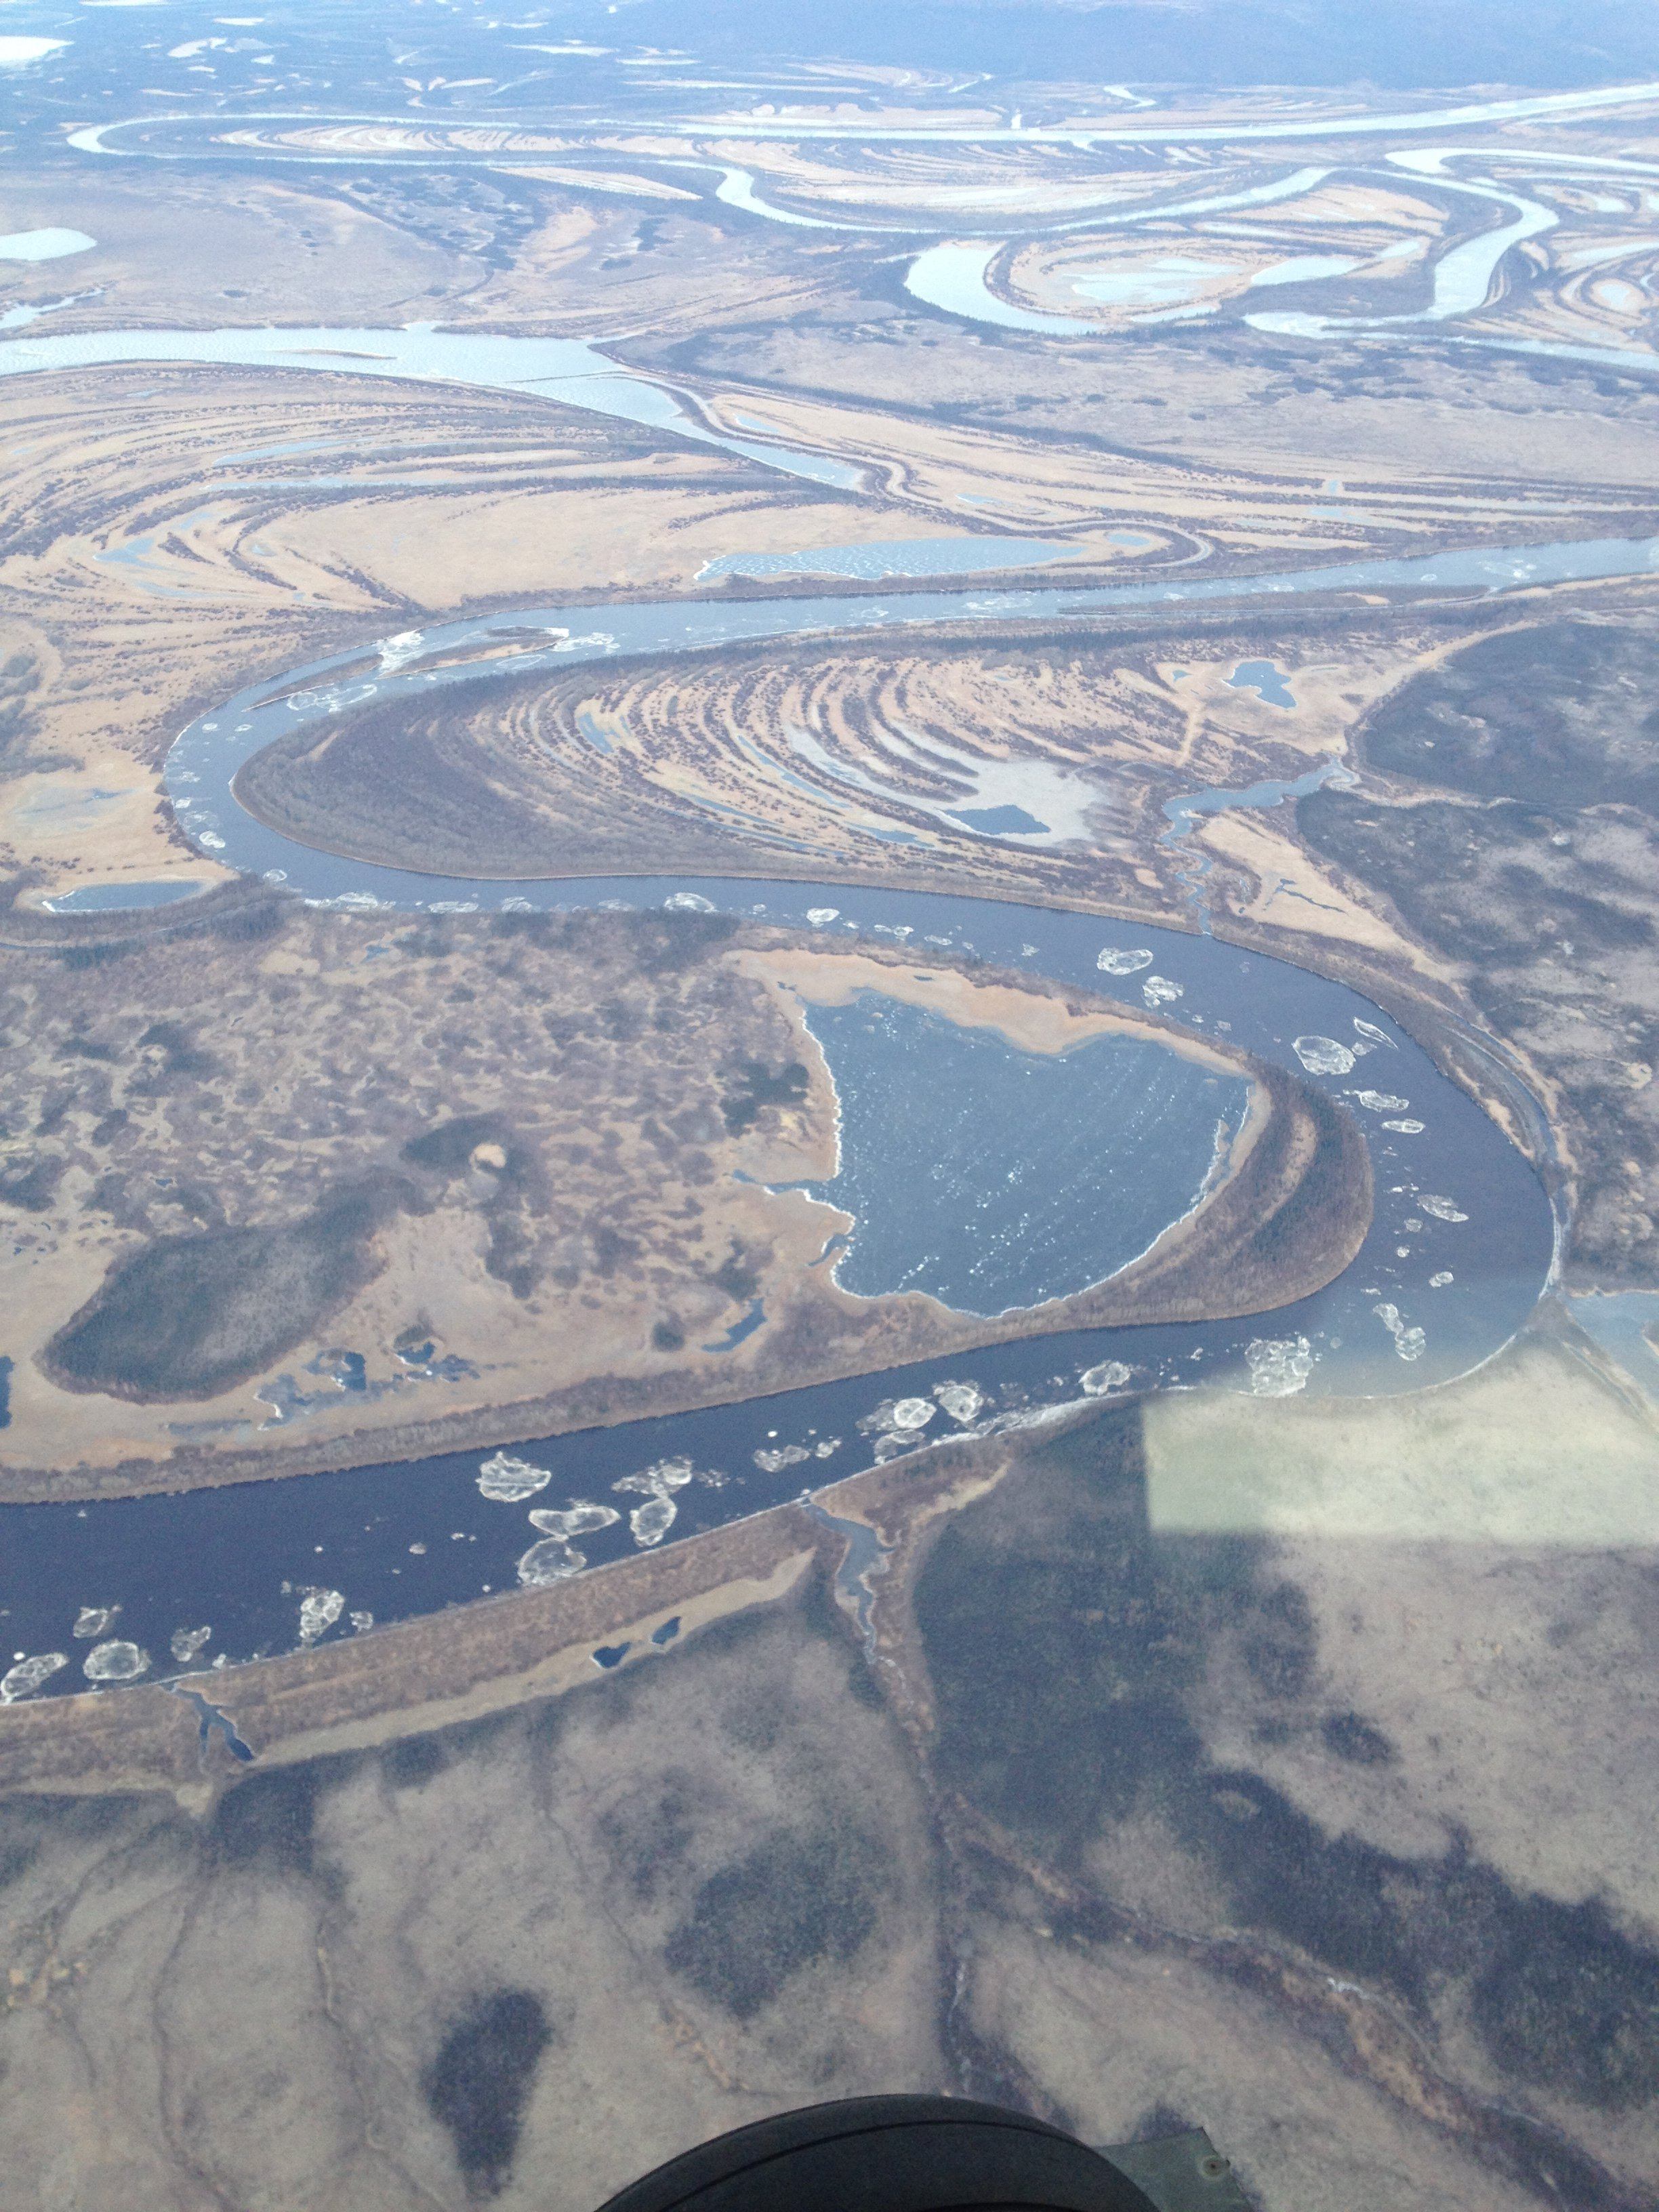 Permafrost thaw altering chemistry of Yukon River, signaling profound changes for entire basin